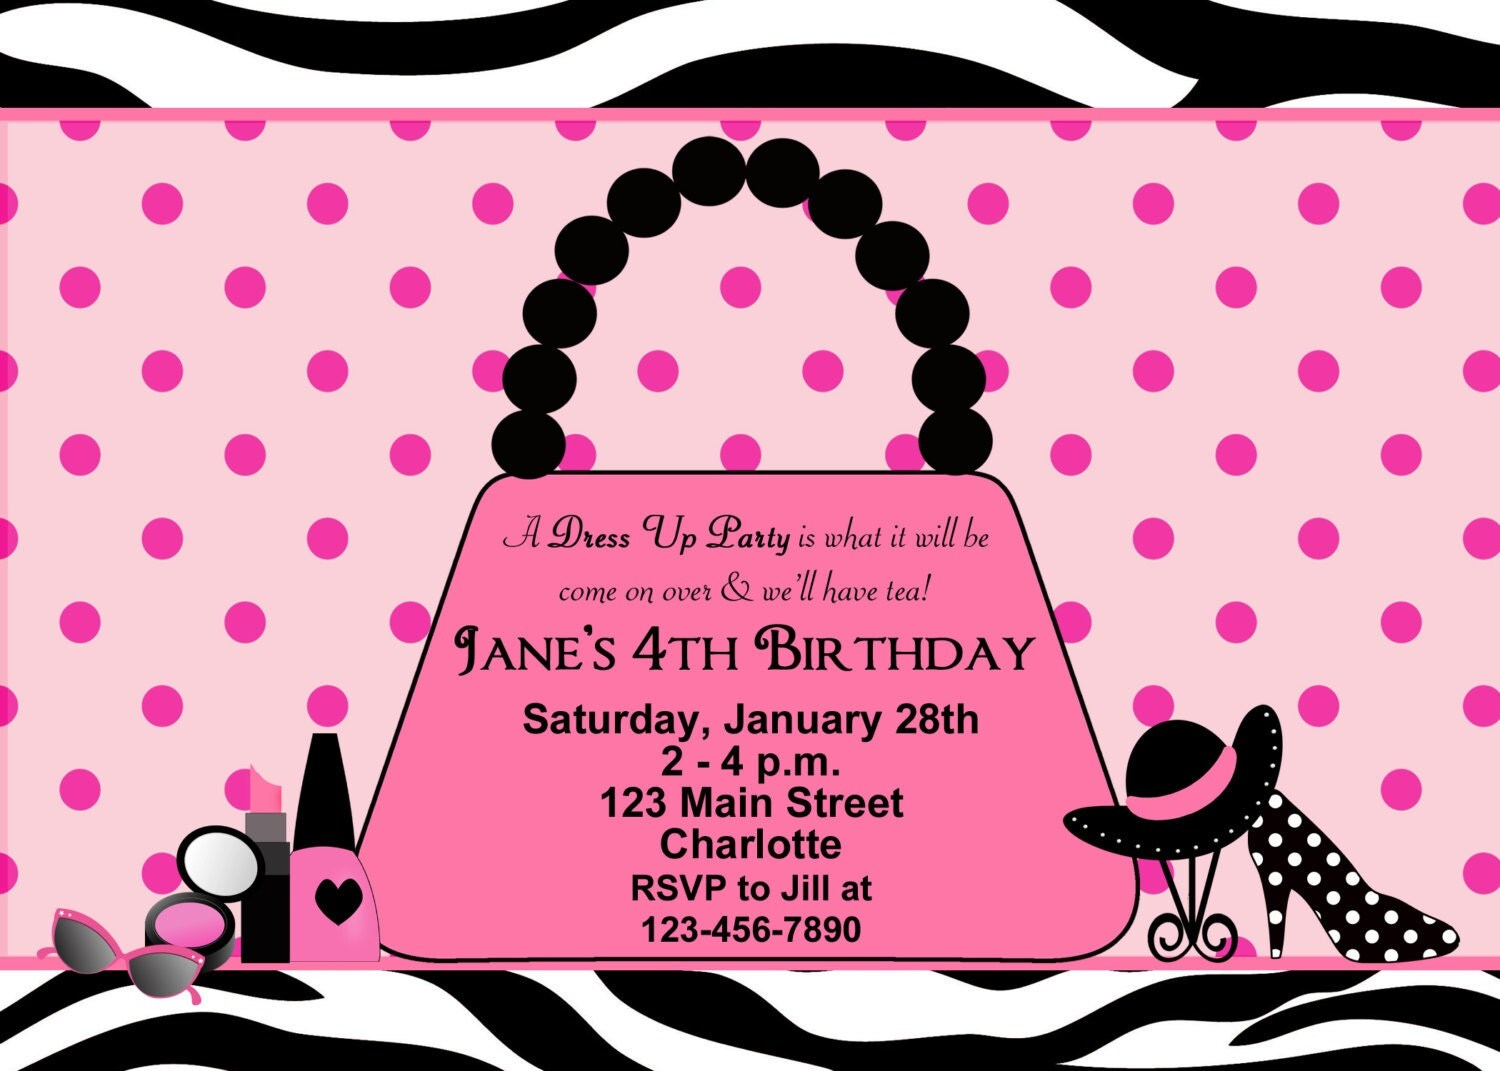 Dress Up Party Birthday Invitation glamour party purse